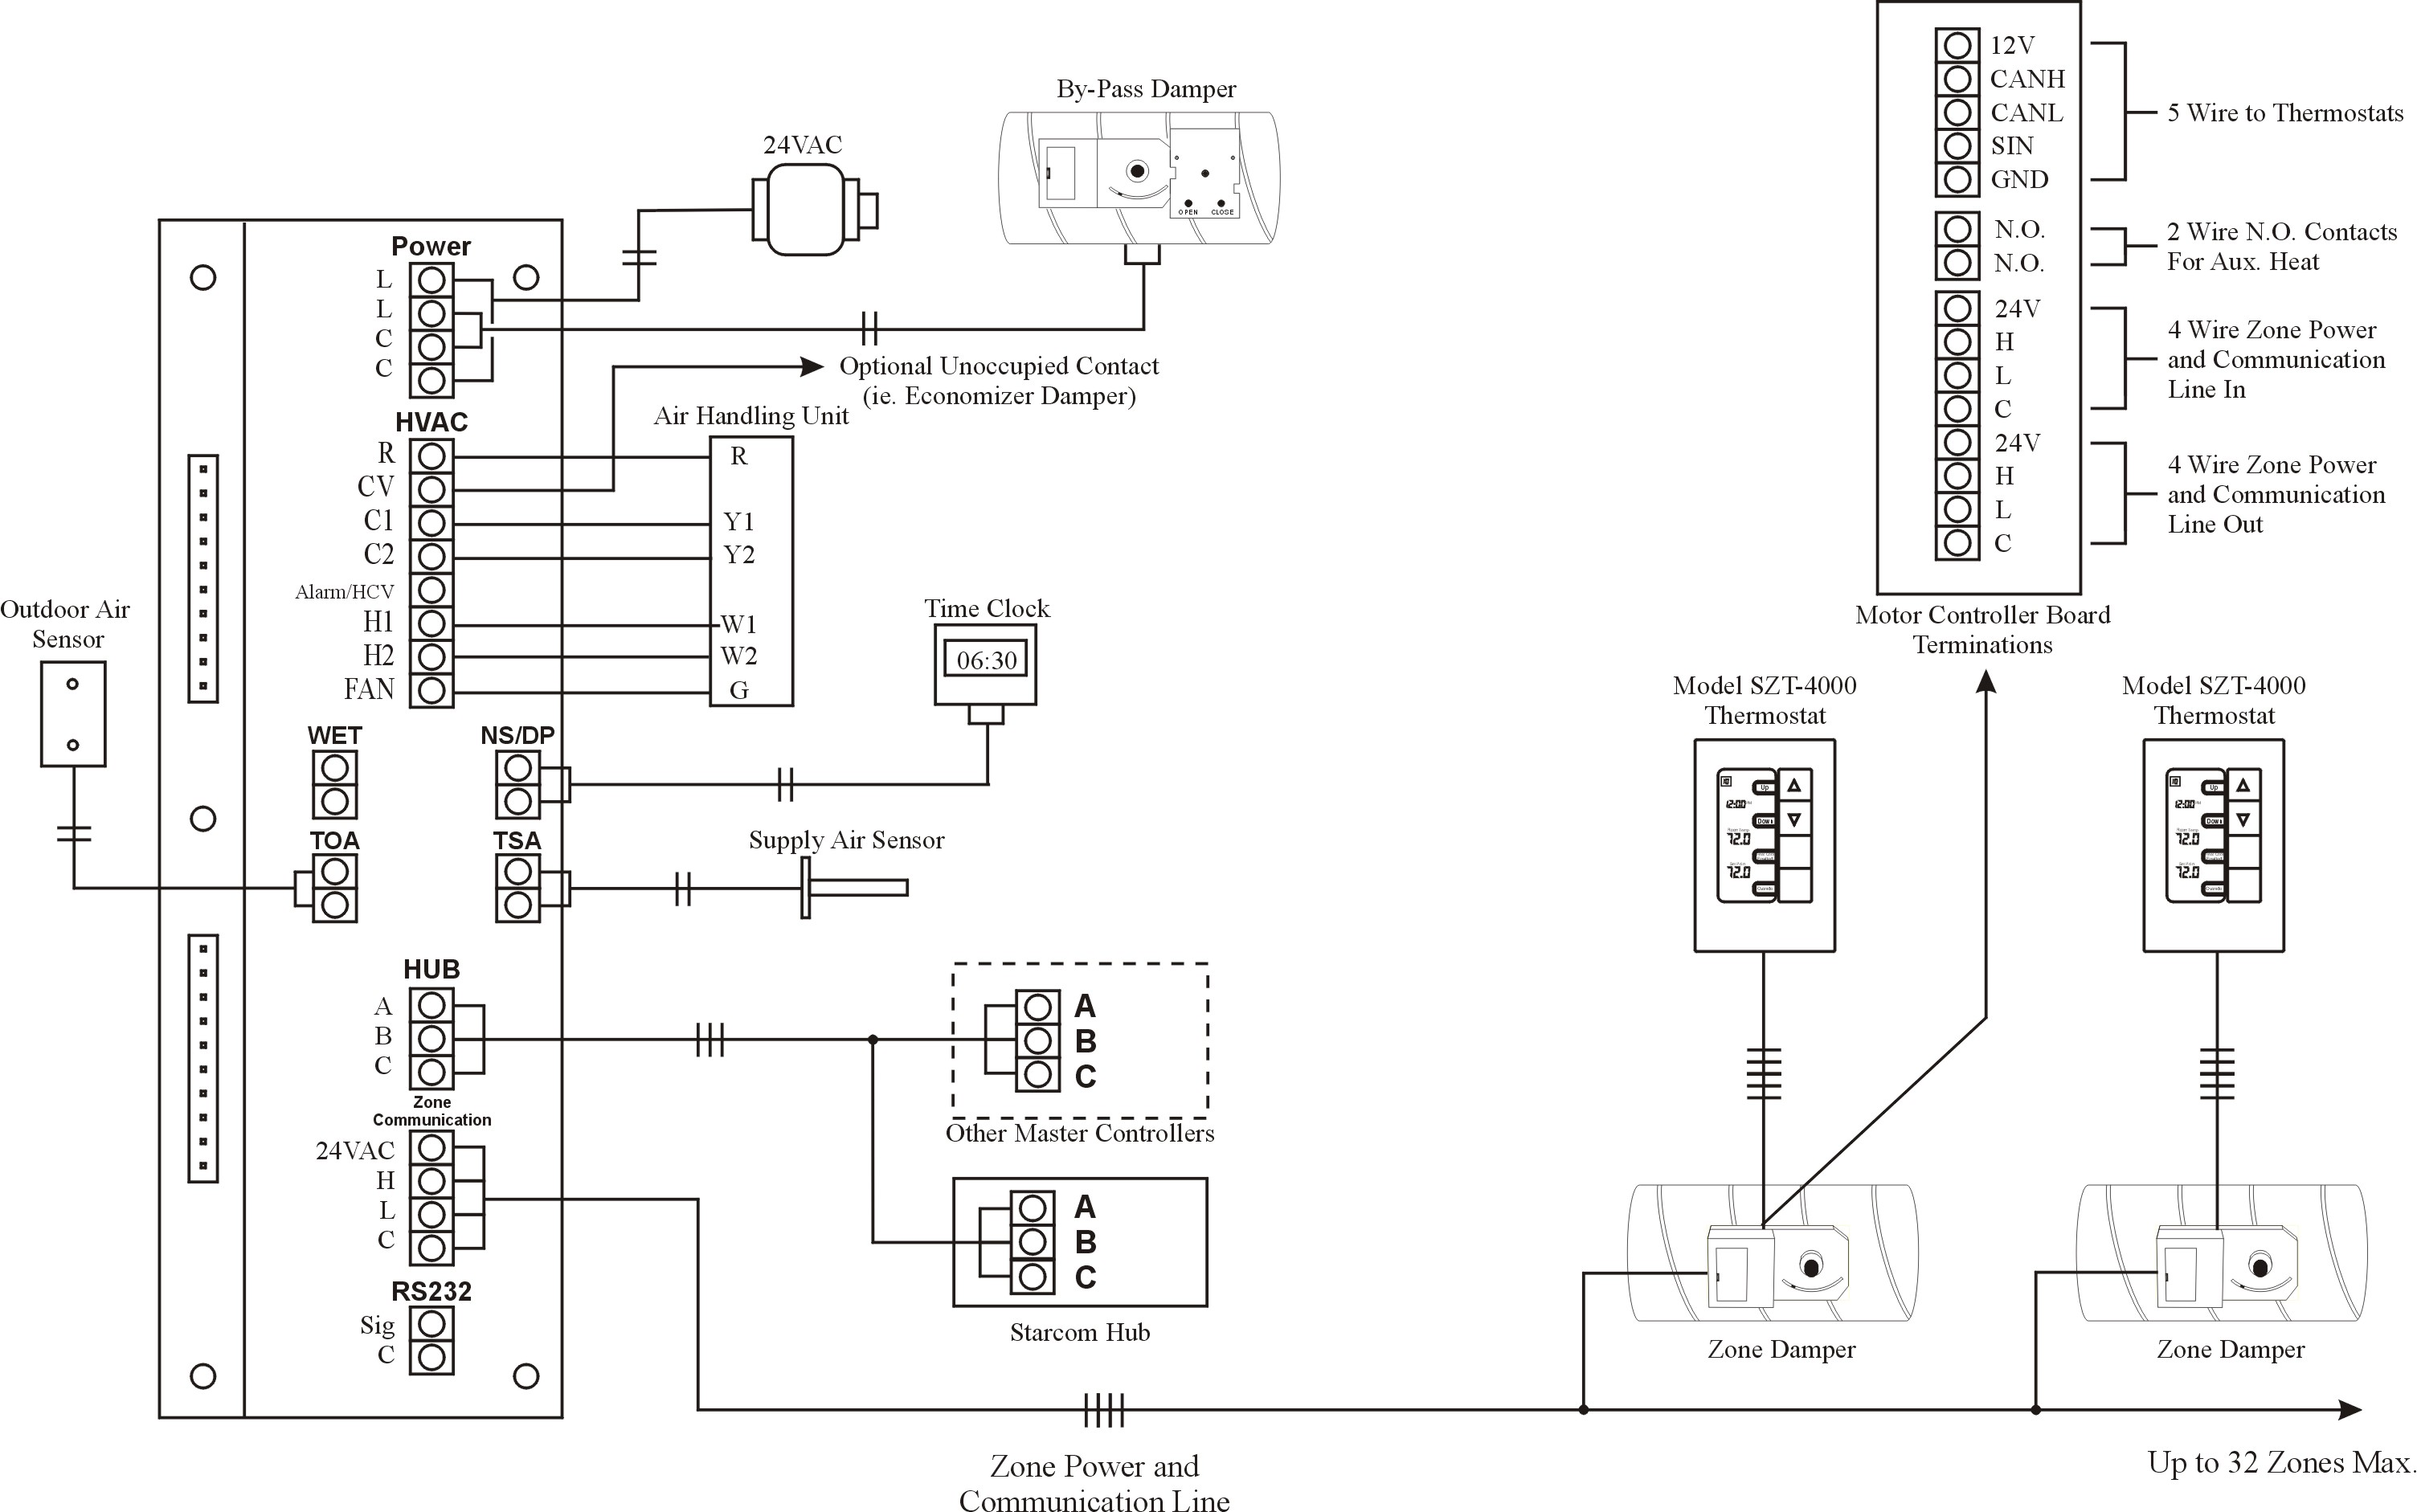 Phone Line Wiring Diagram Pdf Wiring Diagram